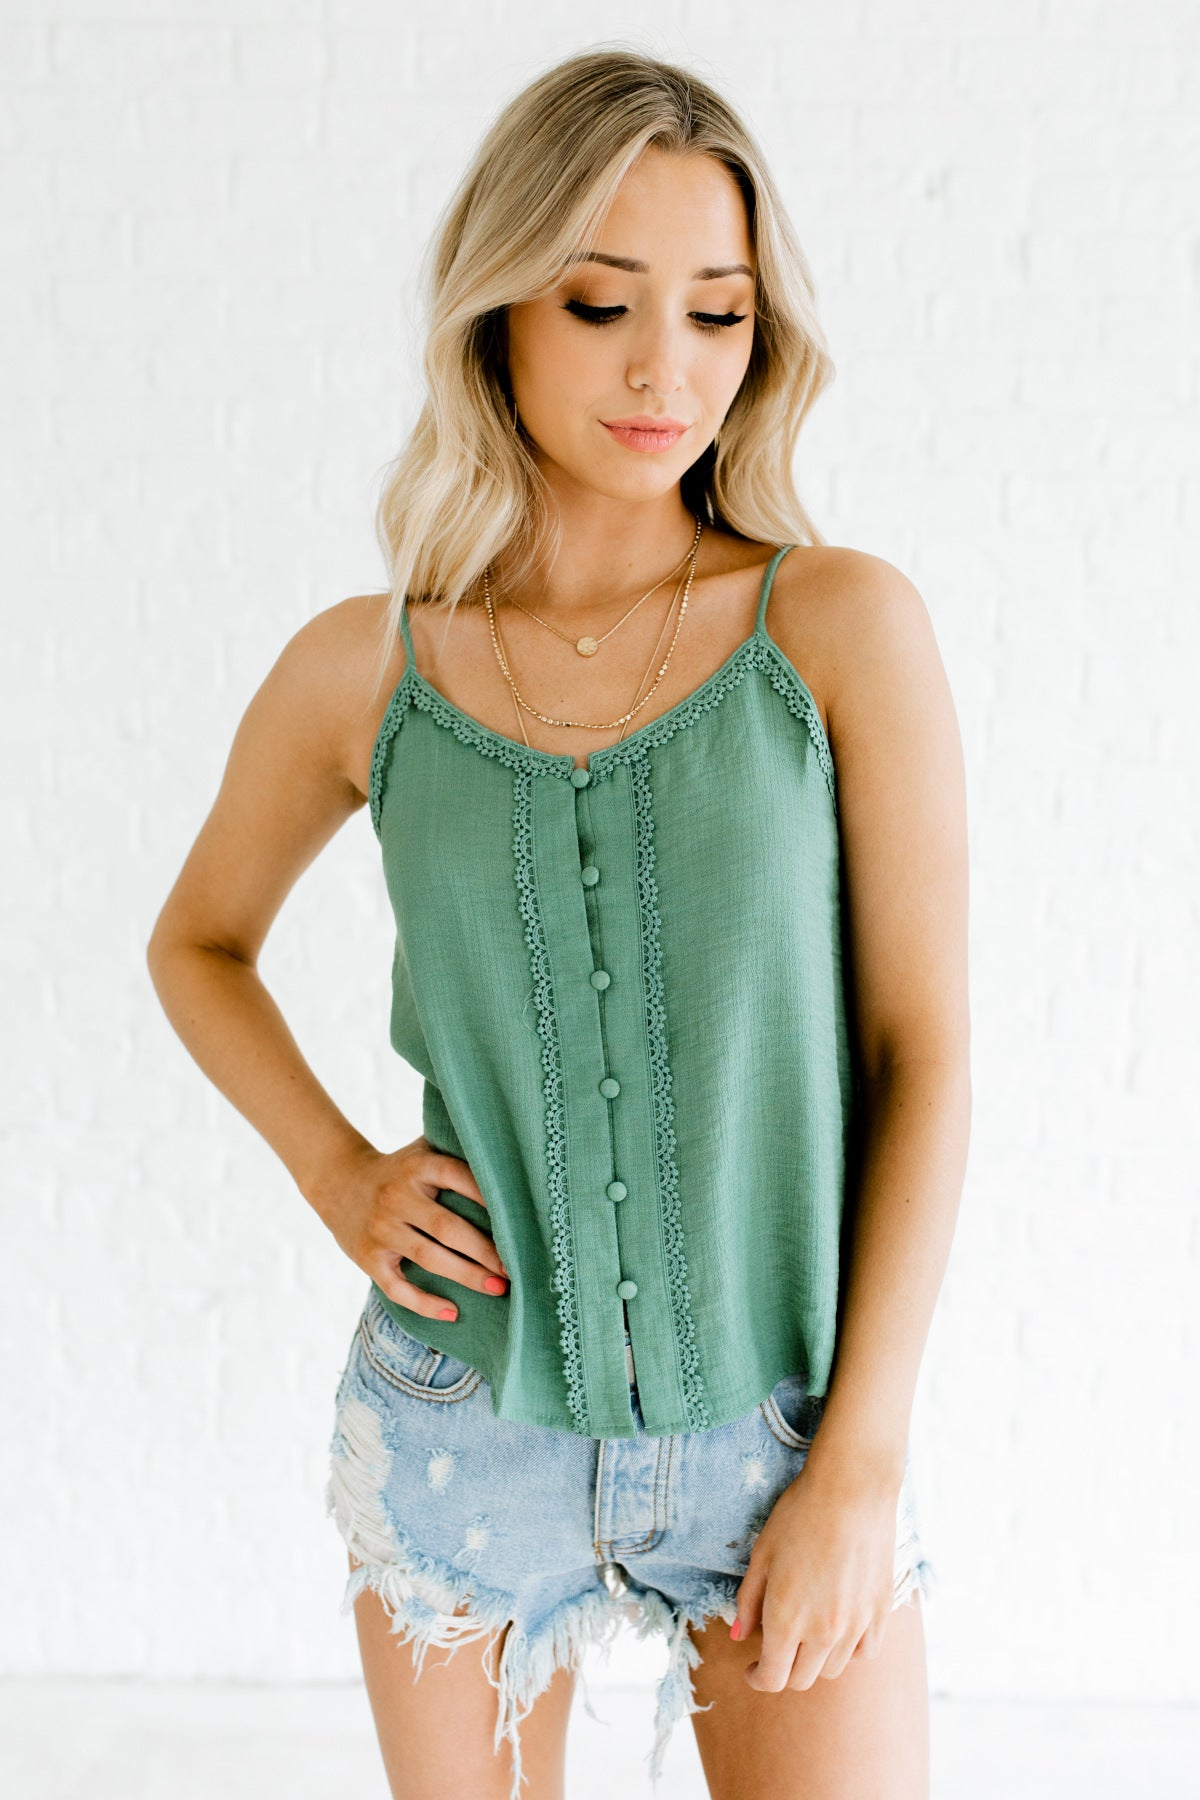 Turquoise Green Crochet Trim Button Up Tank Tops for Women